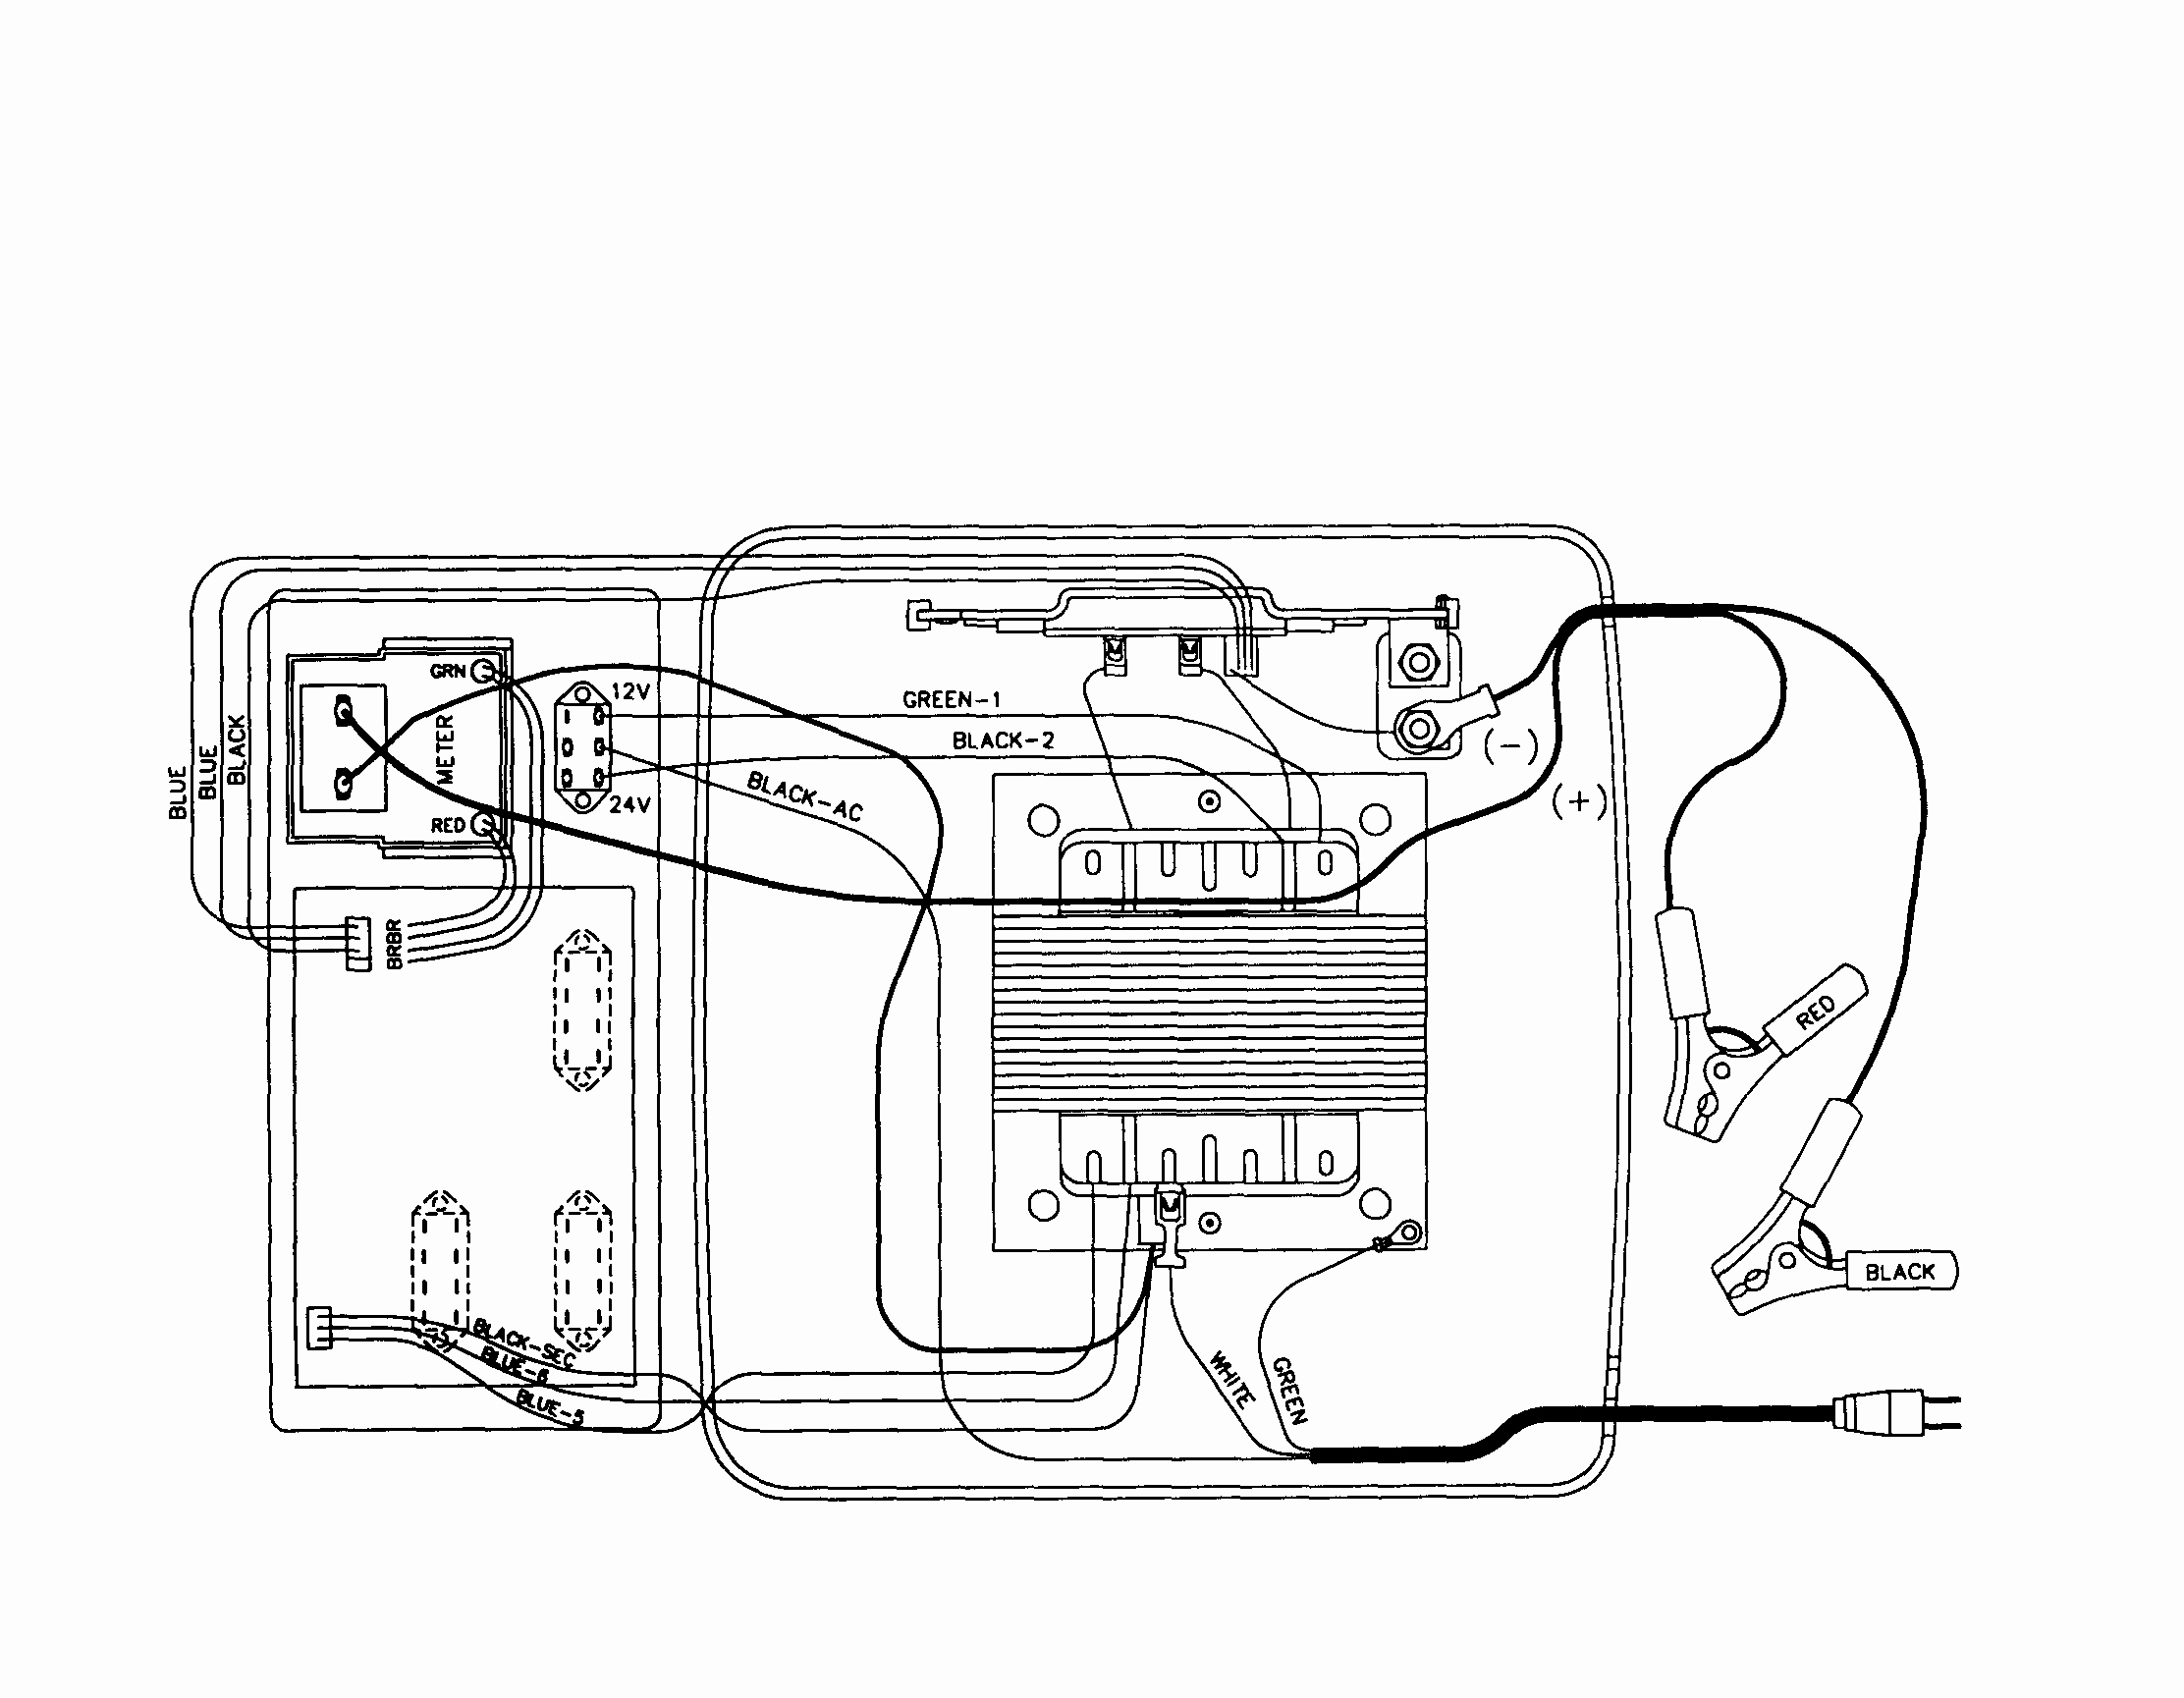 Wiring Diagram For Schumacher Battery Charger from i0.wp.com